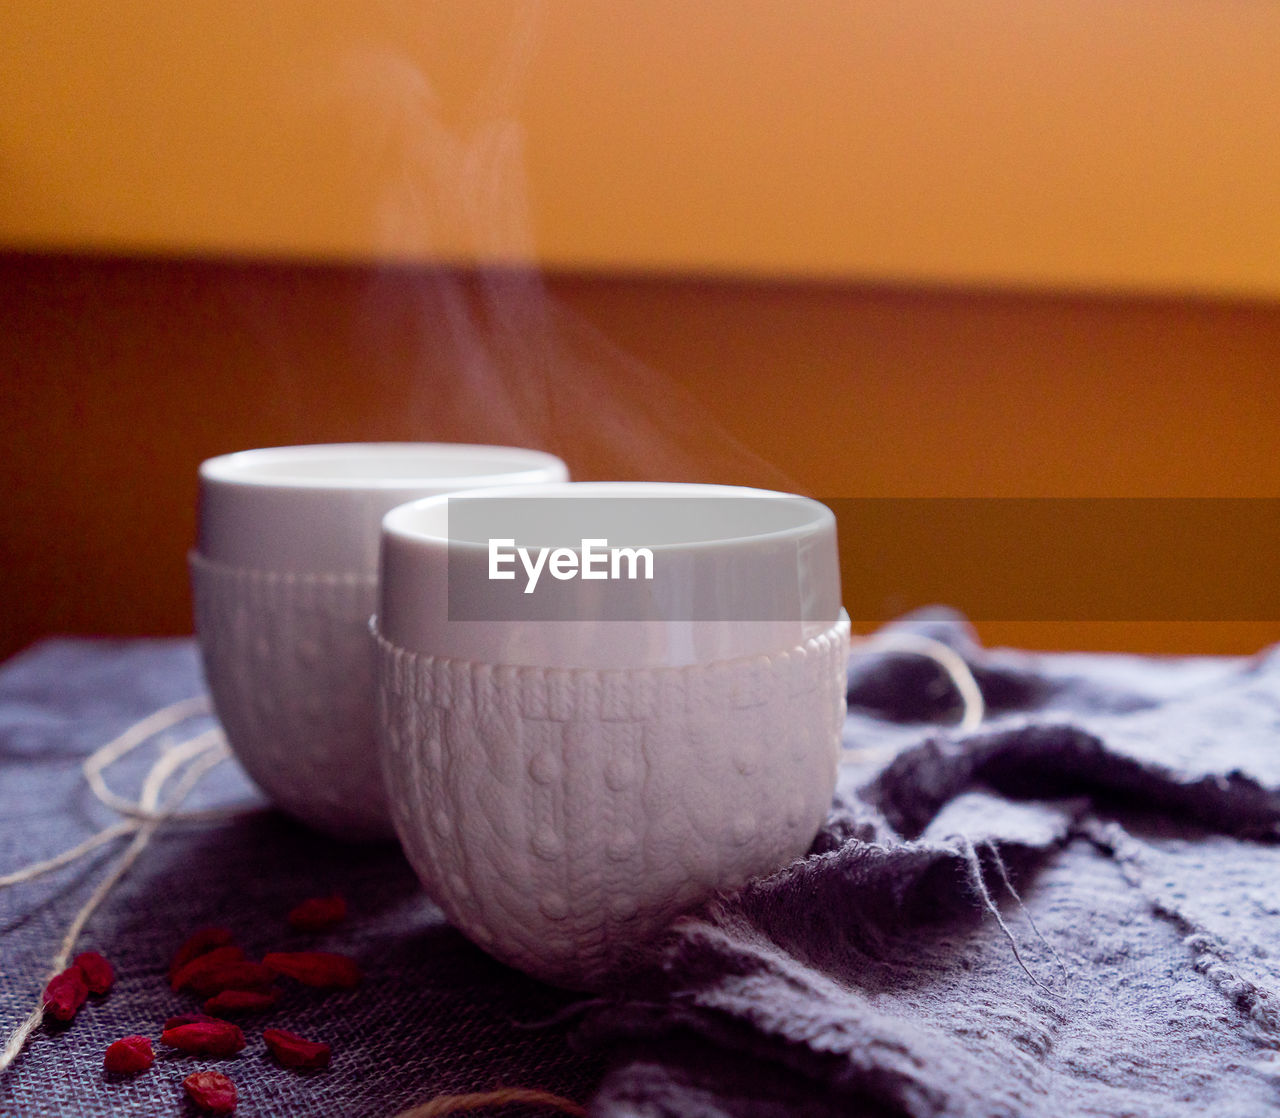 indoors, textile, still life, close-up, focus on foreground, no people, table, food and drink, drink, cup, bed, selective focus, wood - material, refreshment, wool, pattern, home interior, spool, orange color, furniture